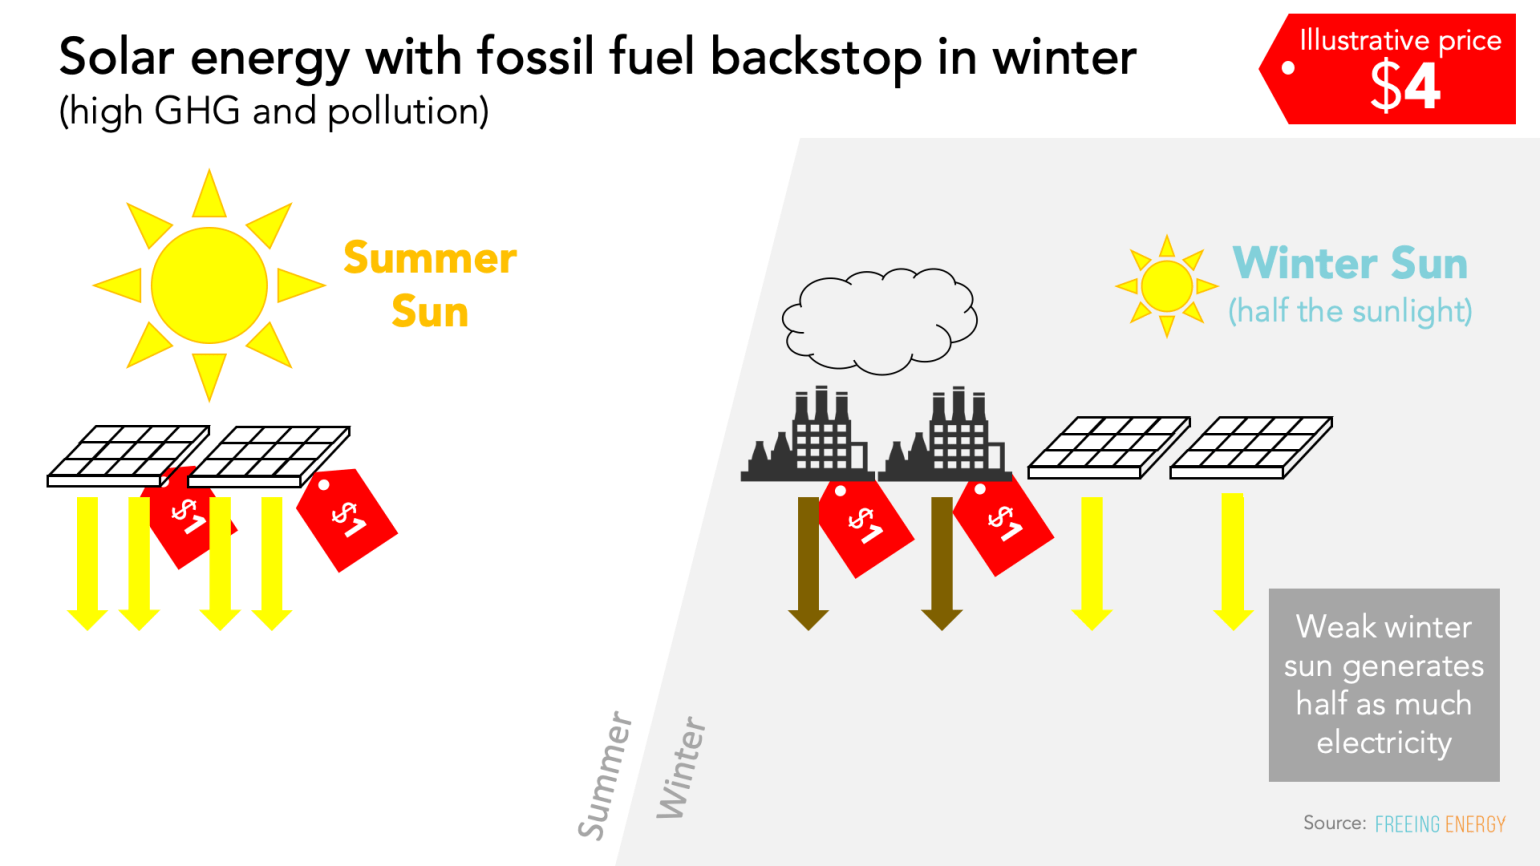 Solar energy with fossil fuel backstop in winter - this isn't a clean energy grid